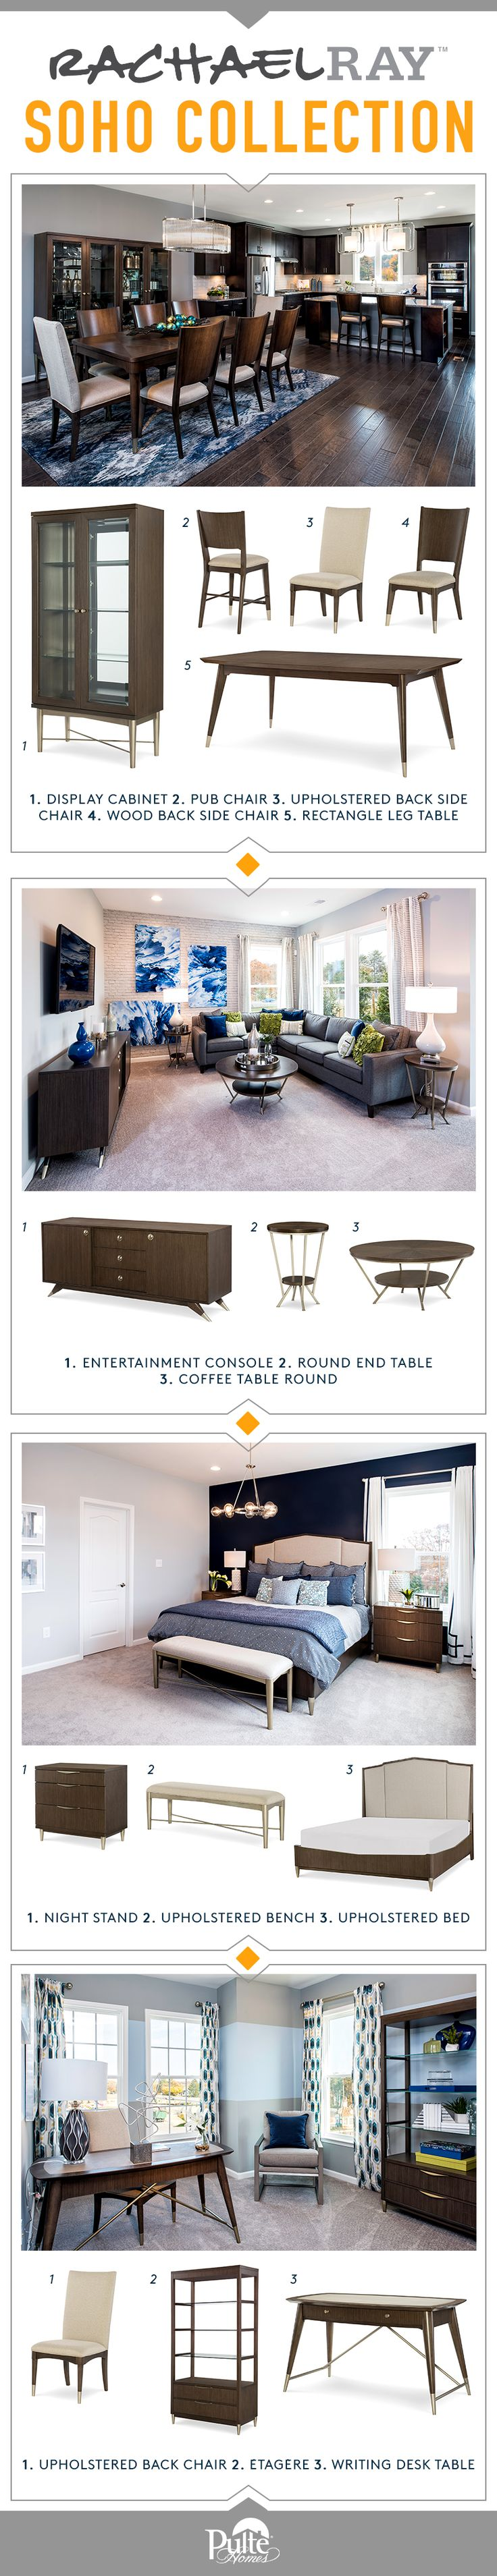 Best Images About Welcome Home On Pinterest Design Pulte - Pulte homes design center